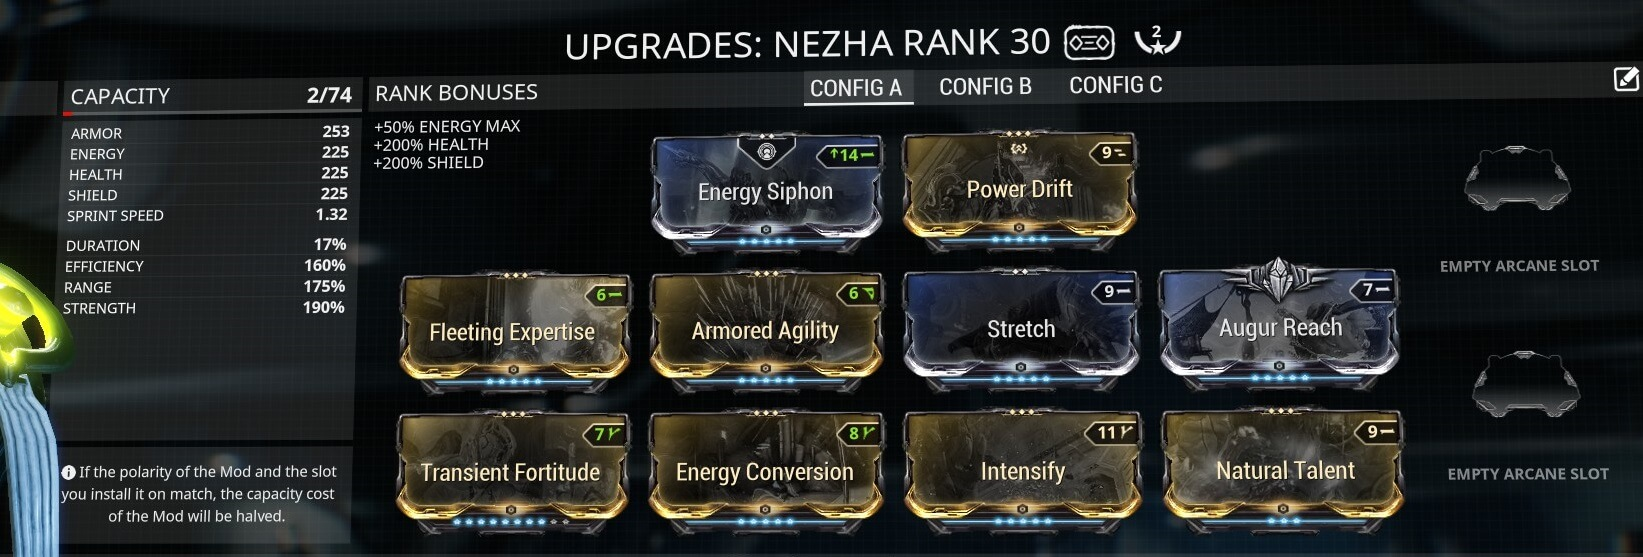 Warframe Nezha Divine Spears 2 Forma Build